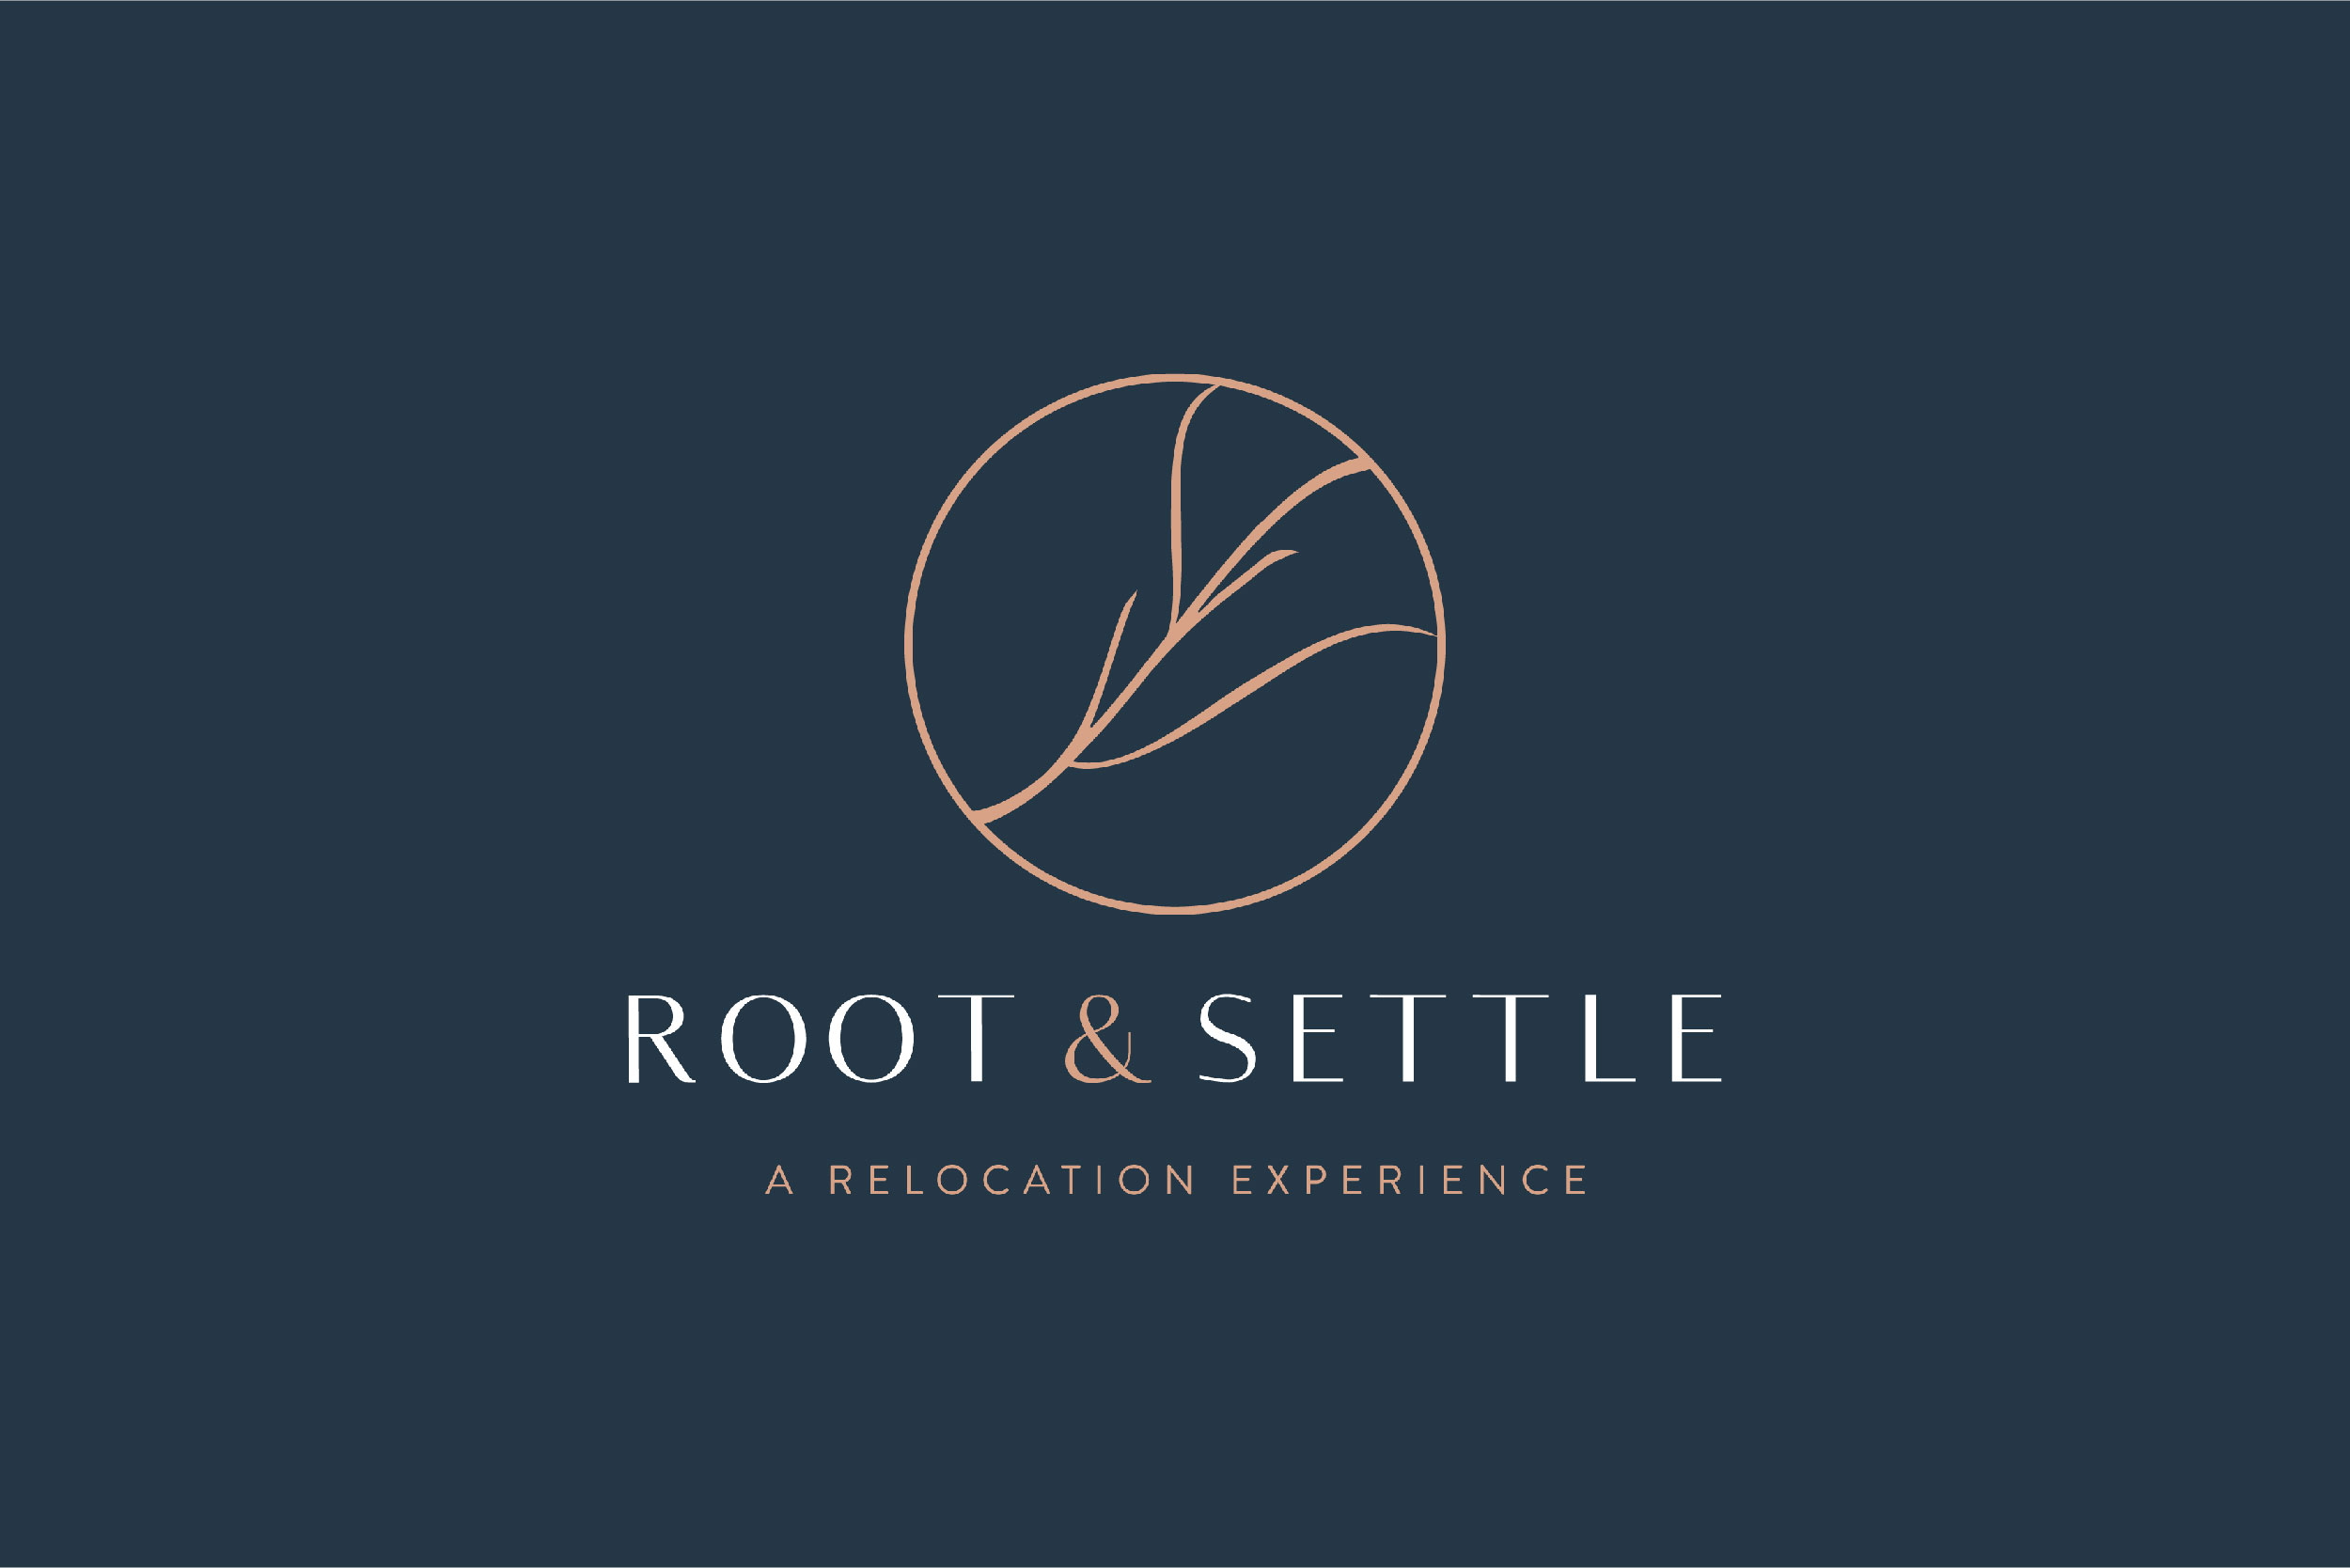 root-and-settle-01.jpg